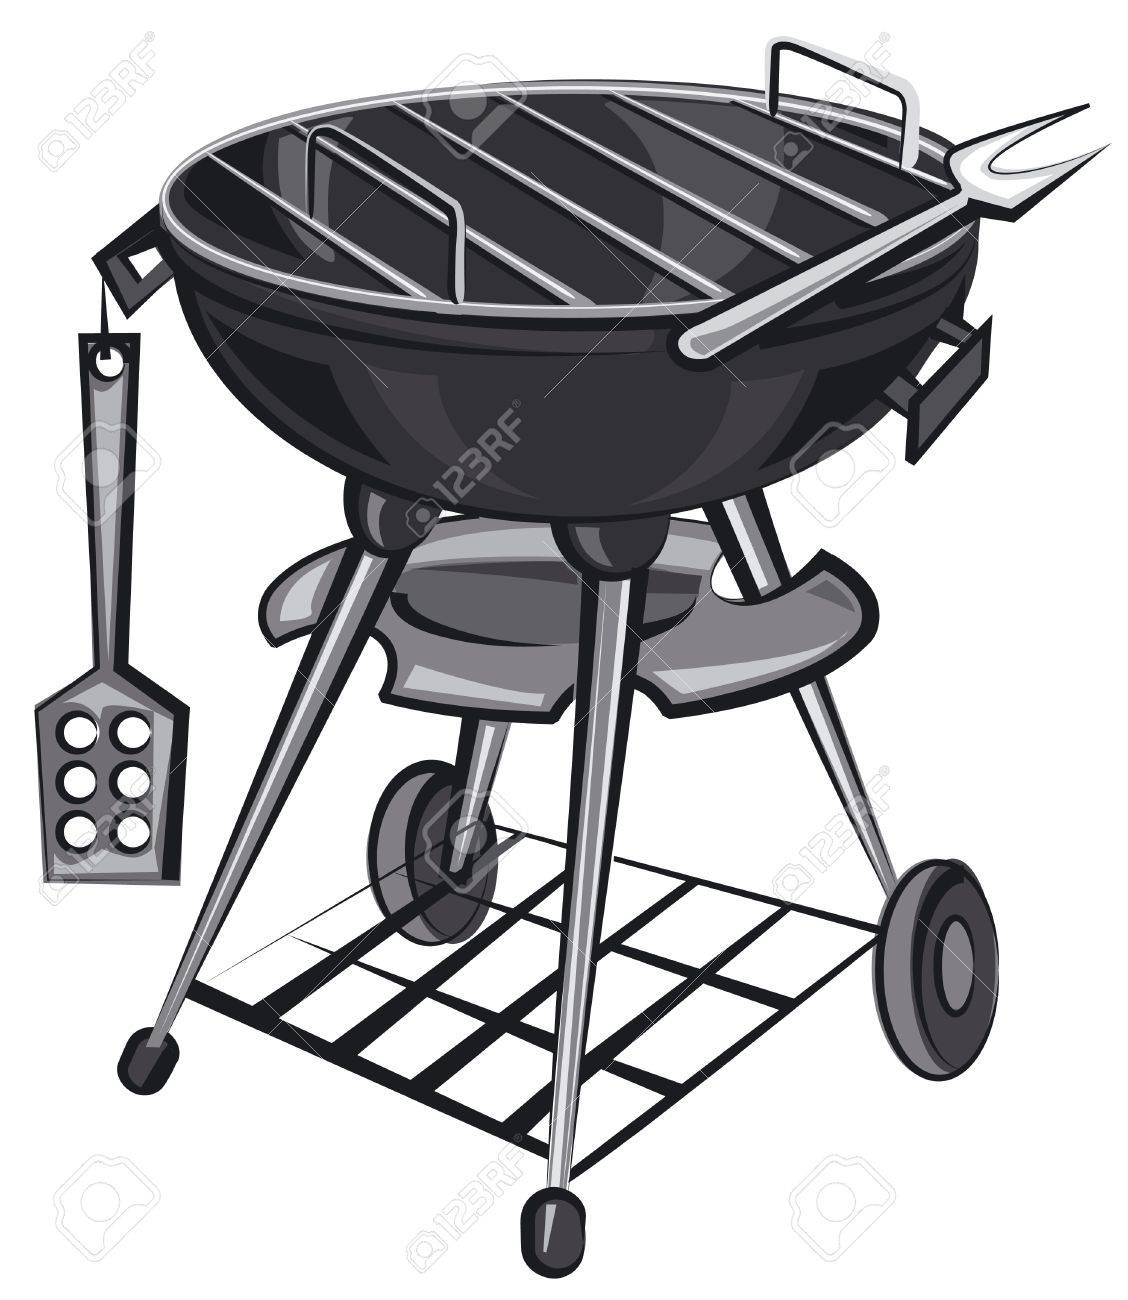 barbecue grill appliance - 15138243